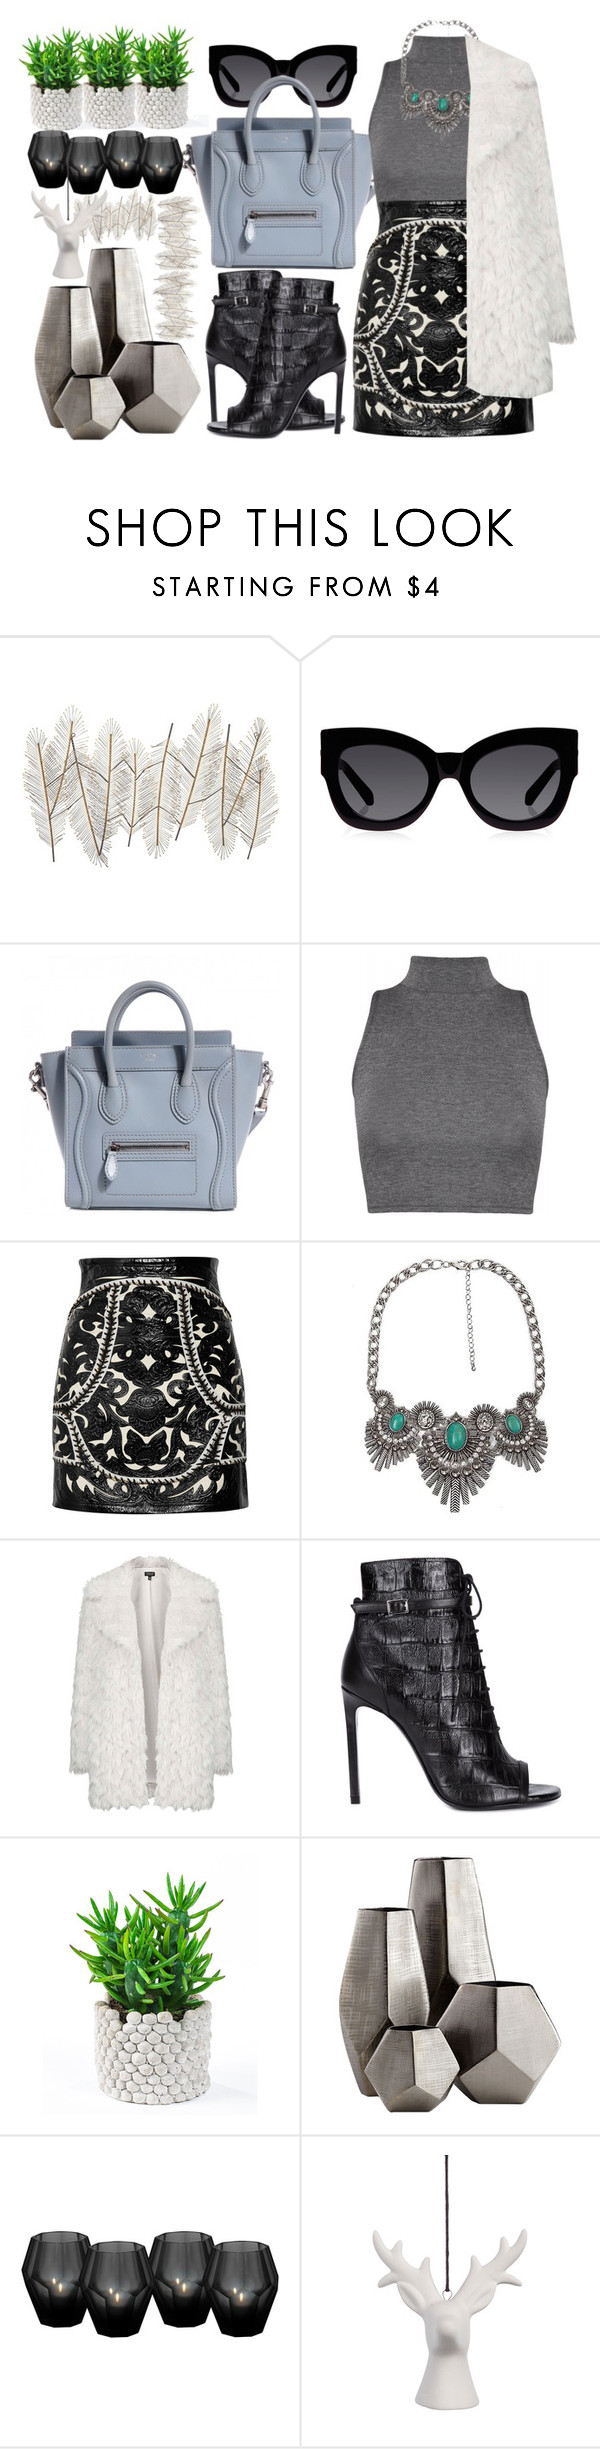 """#242"" by vilte-m ❤ liked on Polyvore featuring Universal Lighting and Decor, Karen Walker, Balmain, BKE, Topshop, Yves Saint Laurent, Cyan Design and Eichholtz"